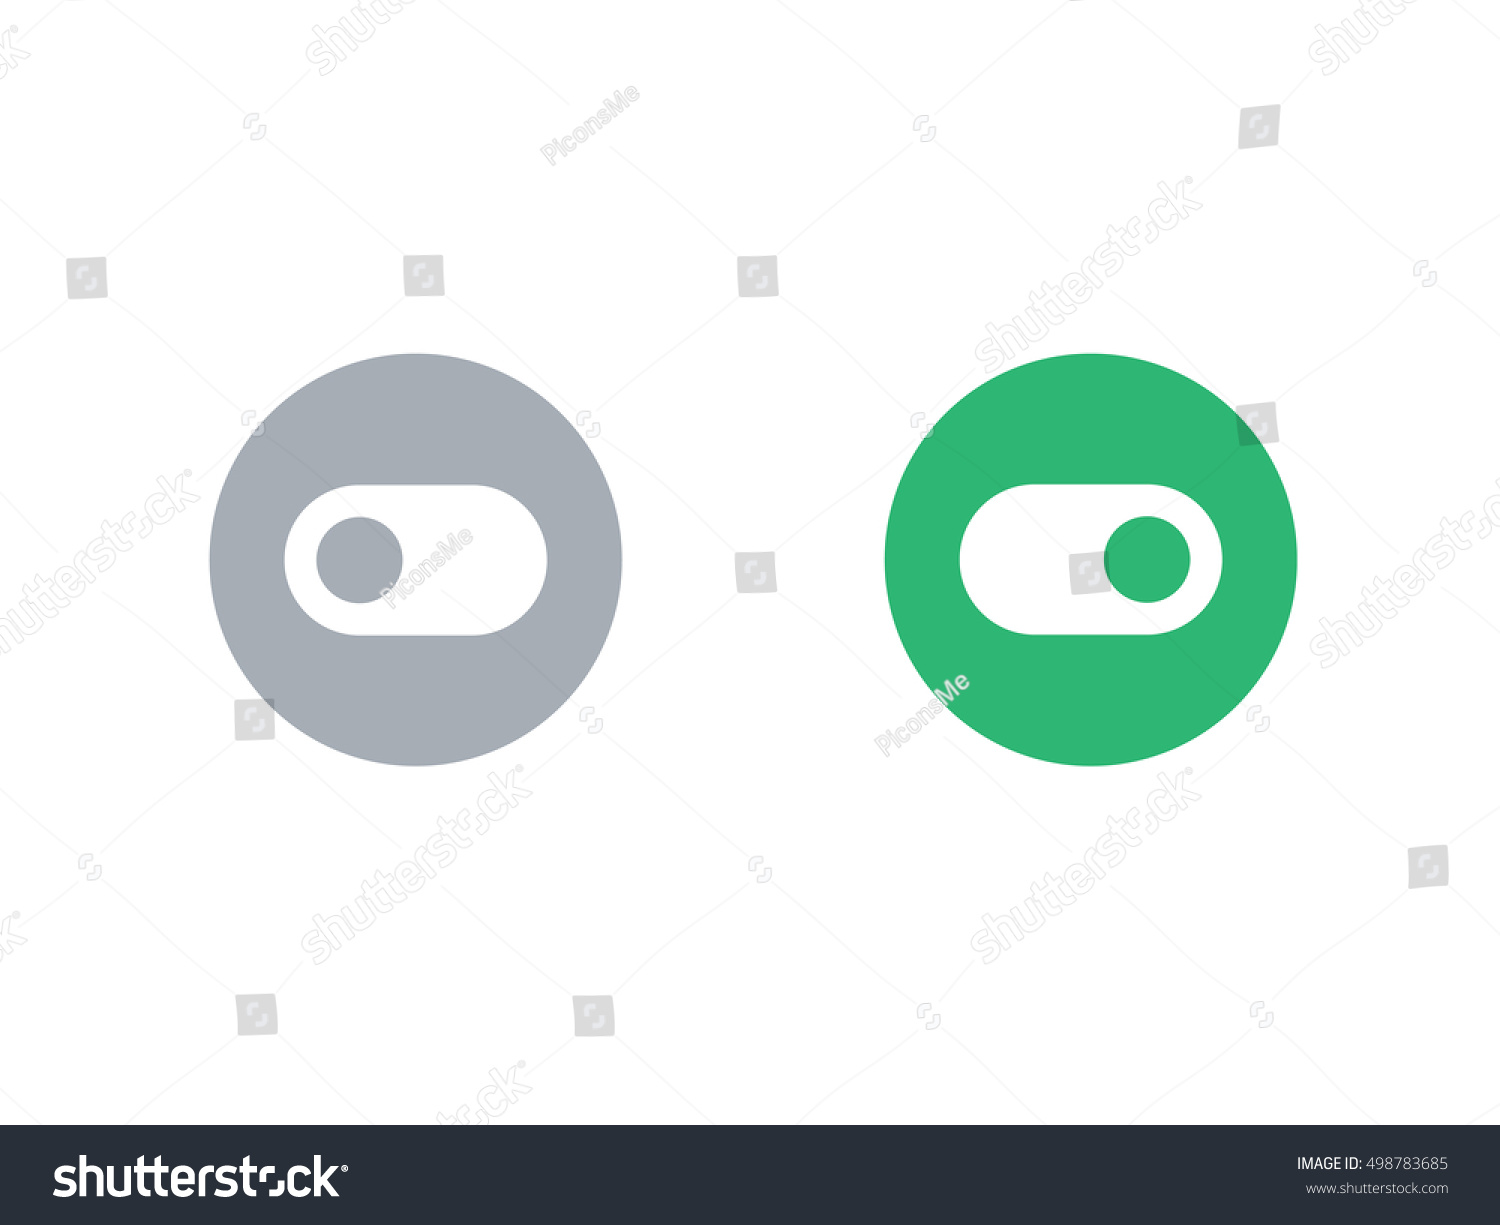 Abstract Green Circle Ecology Symbol Clean Organic Icon Letter O